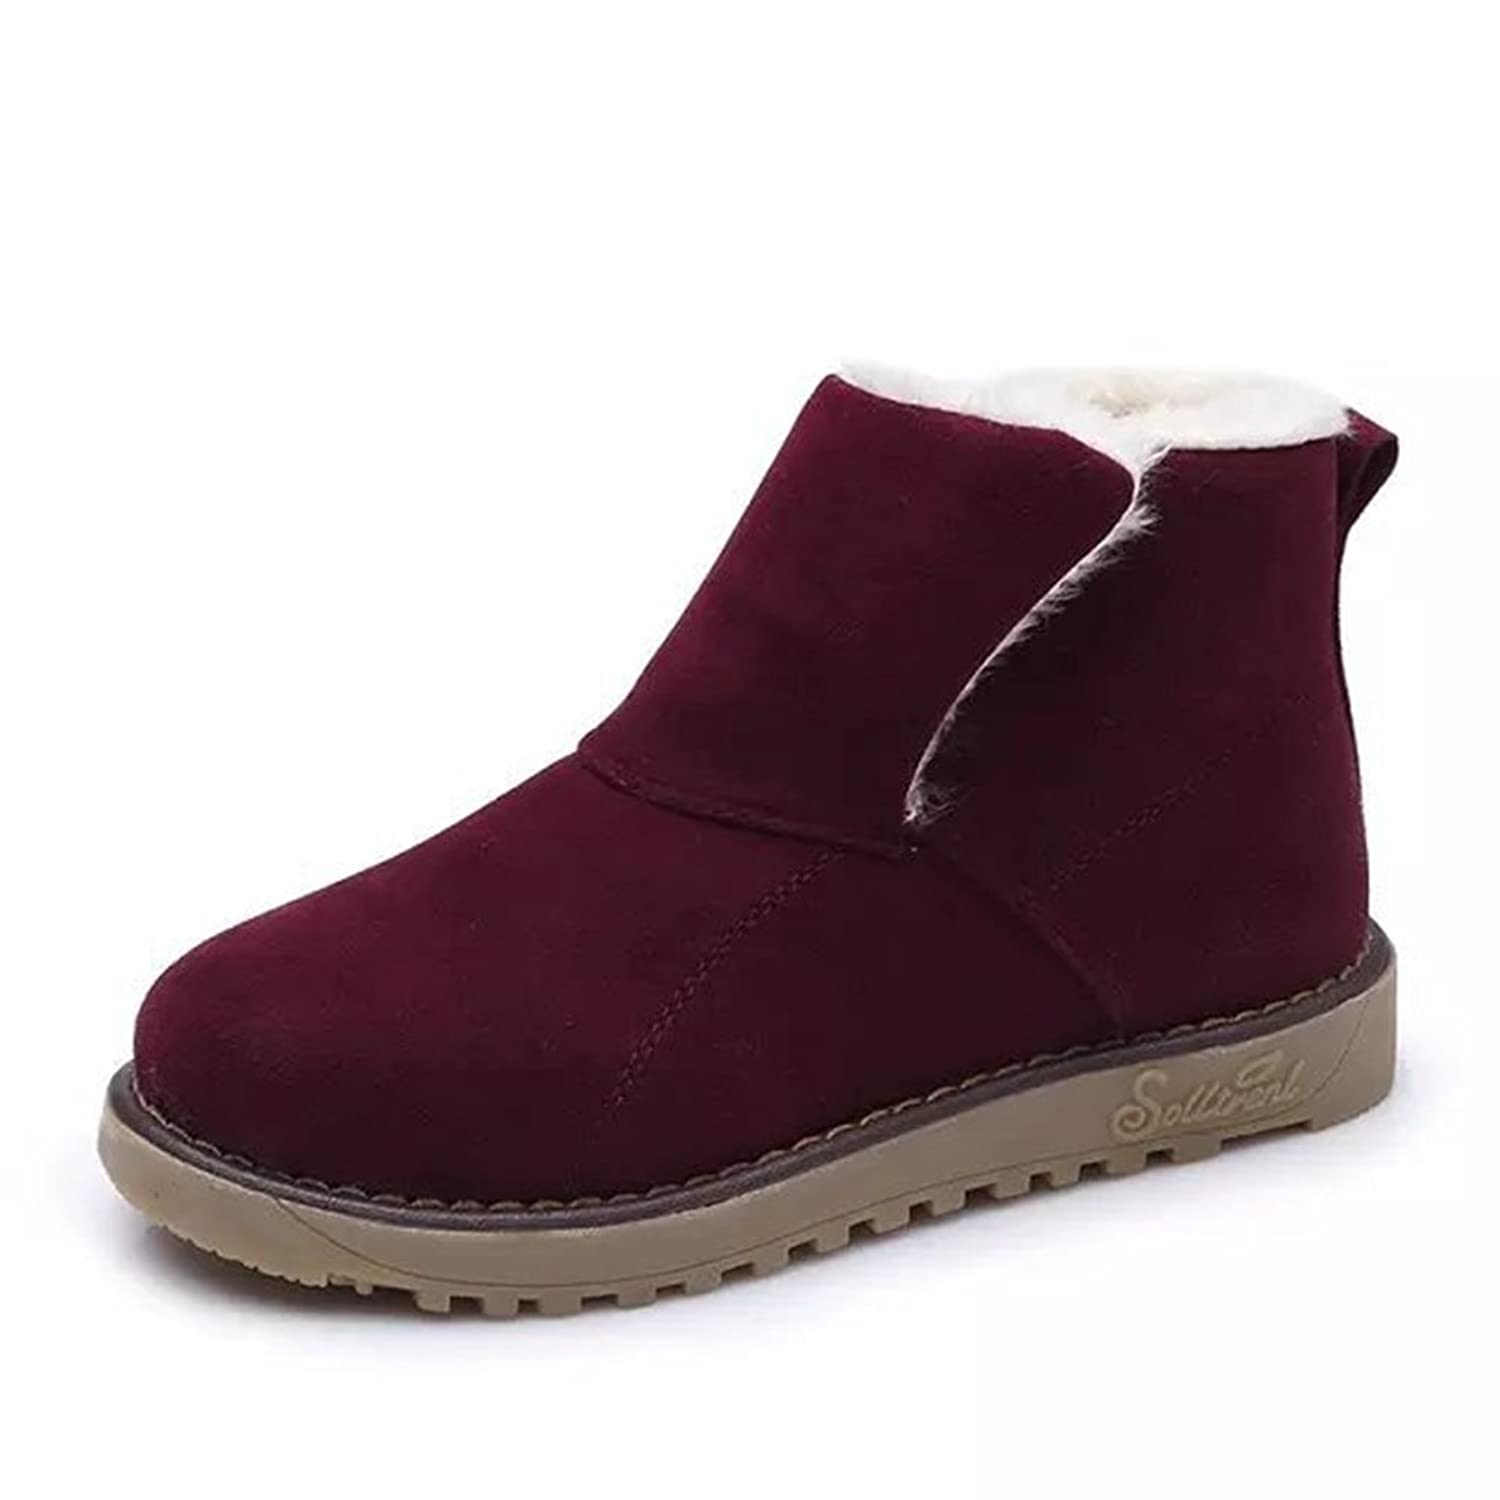 Women's Fashion Snow Boot Warm Winter Student Short Tube Casual Wedge Ankie Sneakers By Btrada